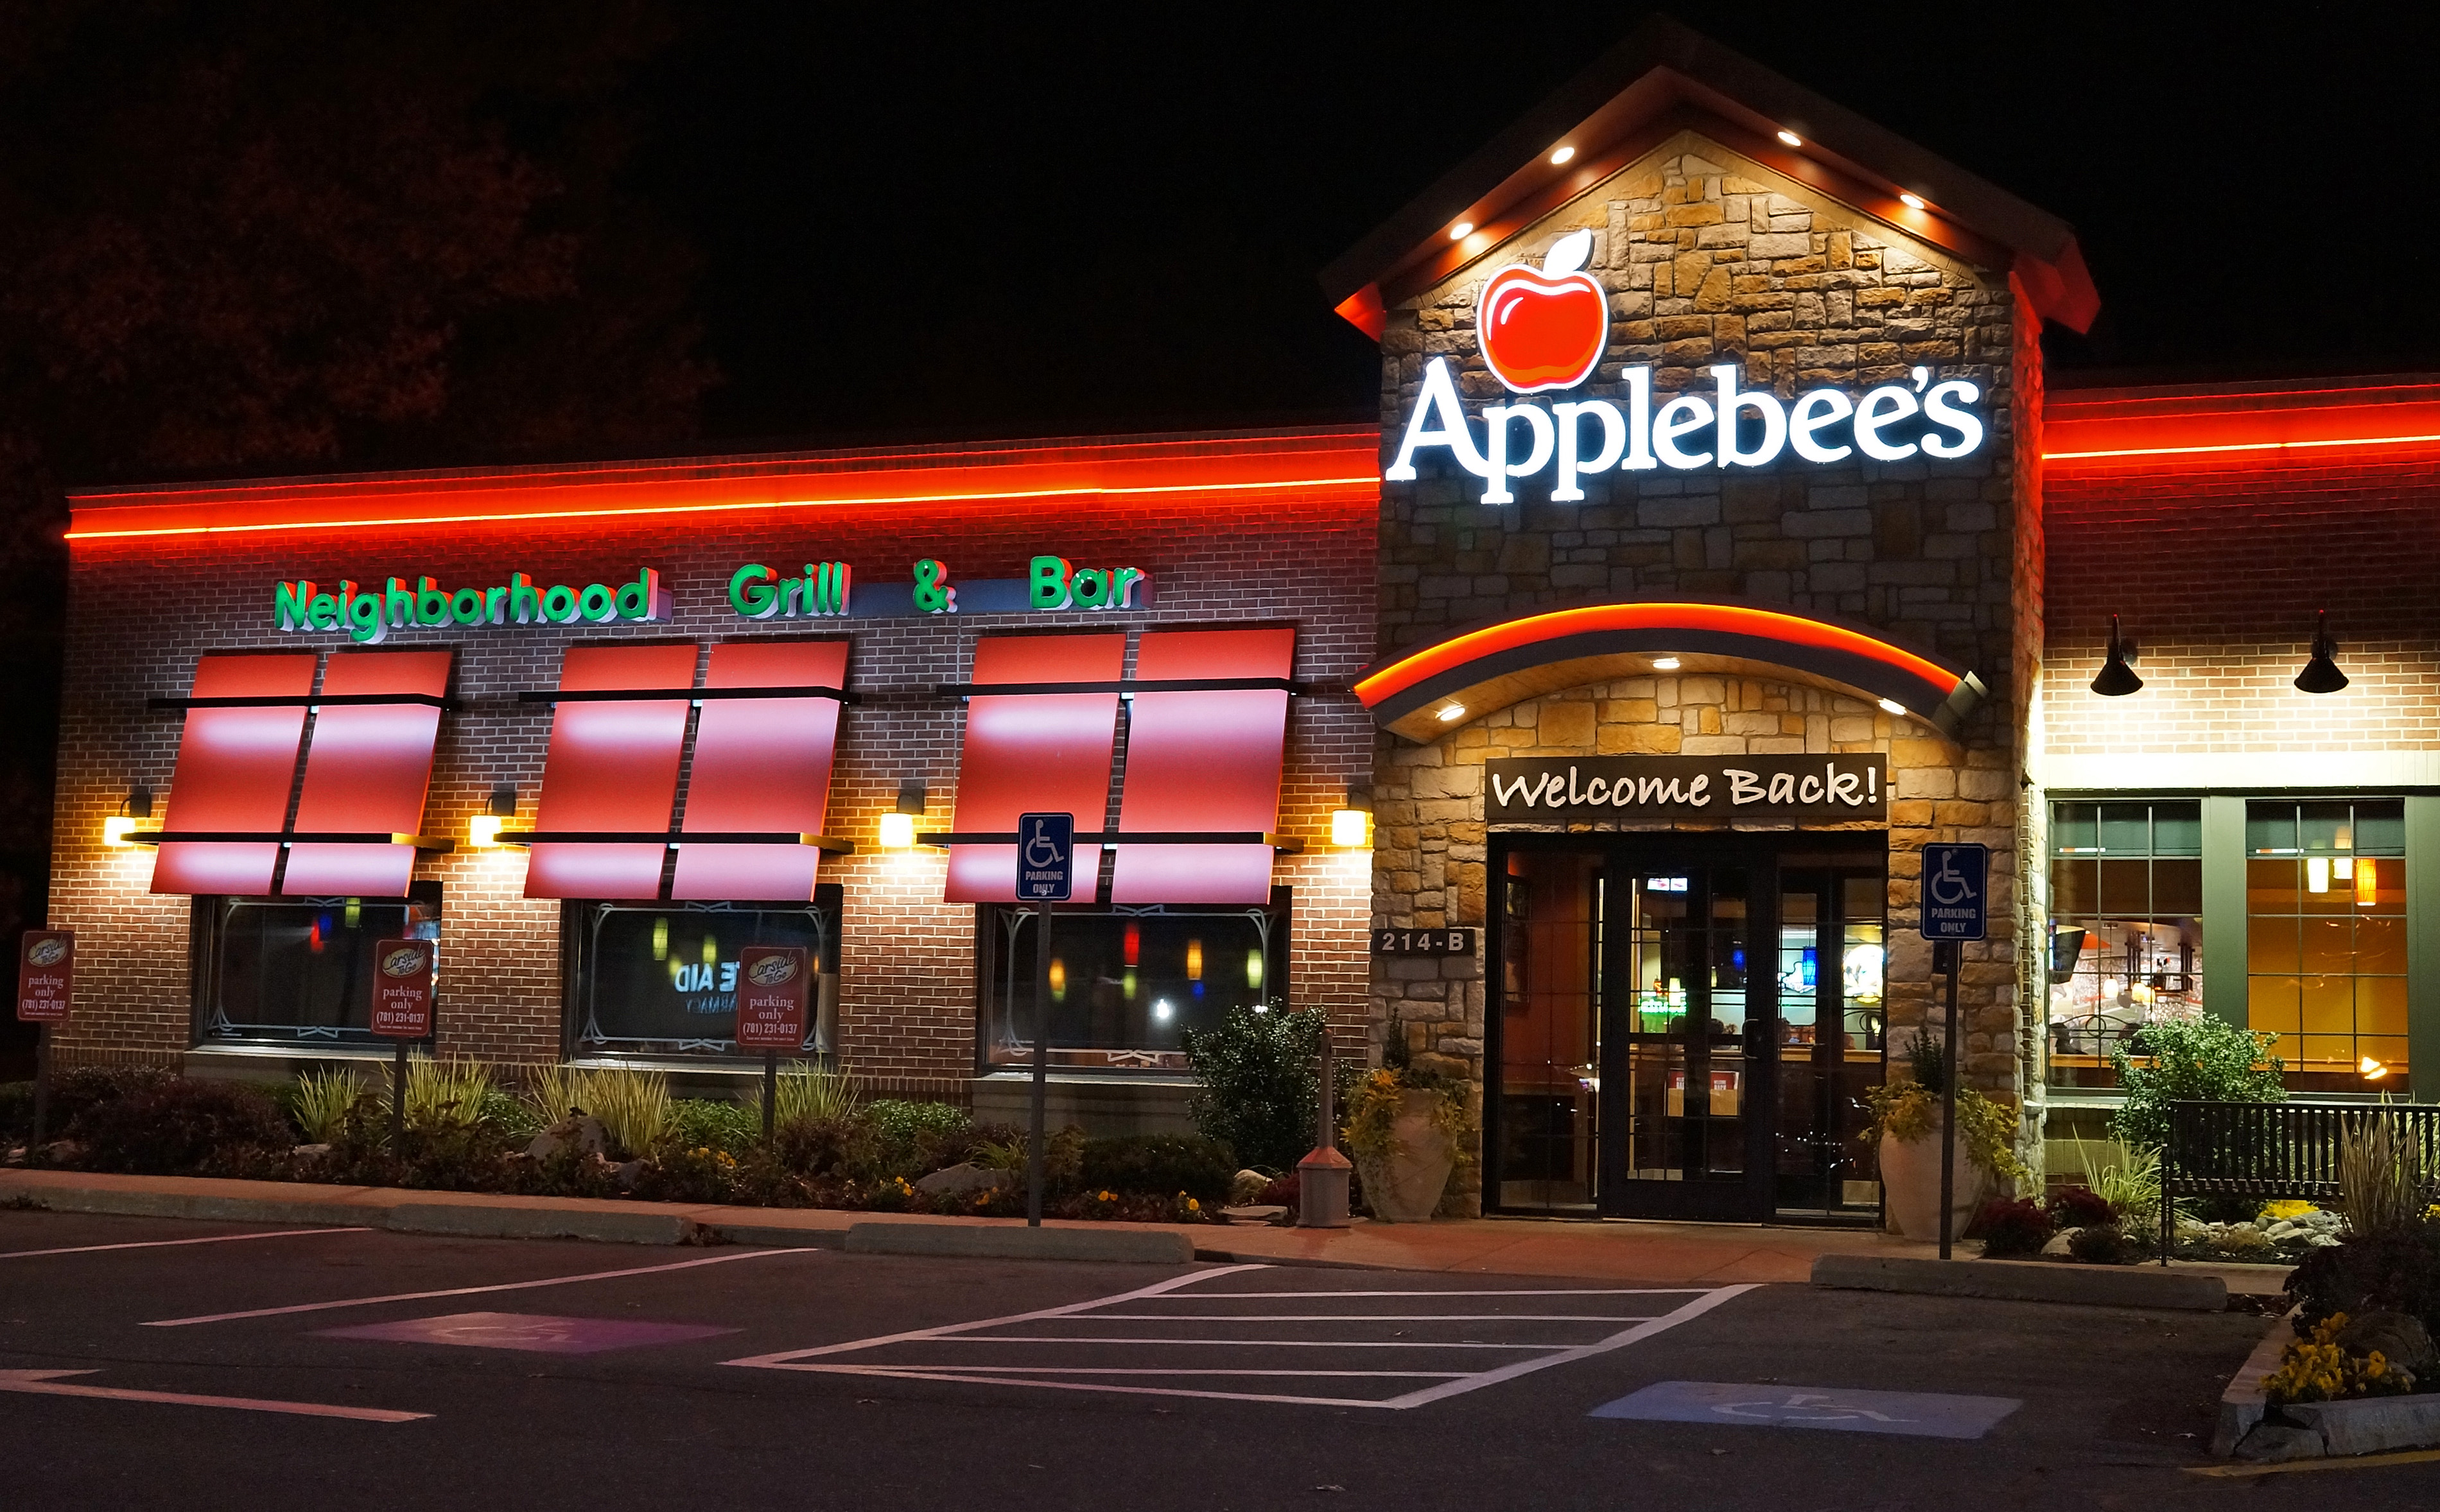 Applebee's Neighborhood Grill and Bar is a causal dining restaurant serving mainstream American dishes such as salads, burgers, sandwiches and steaks.